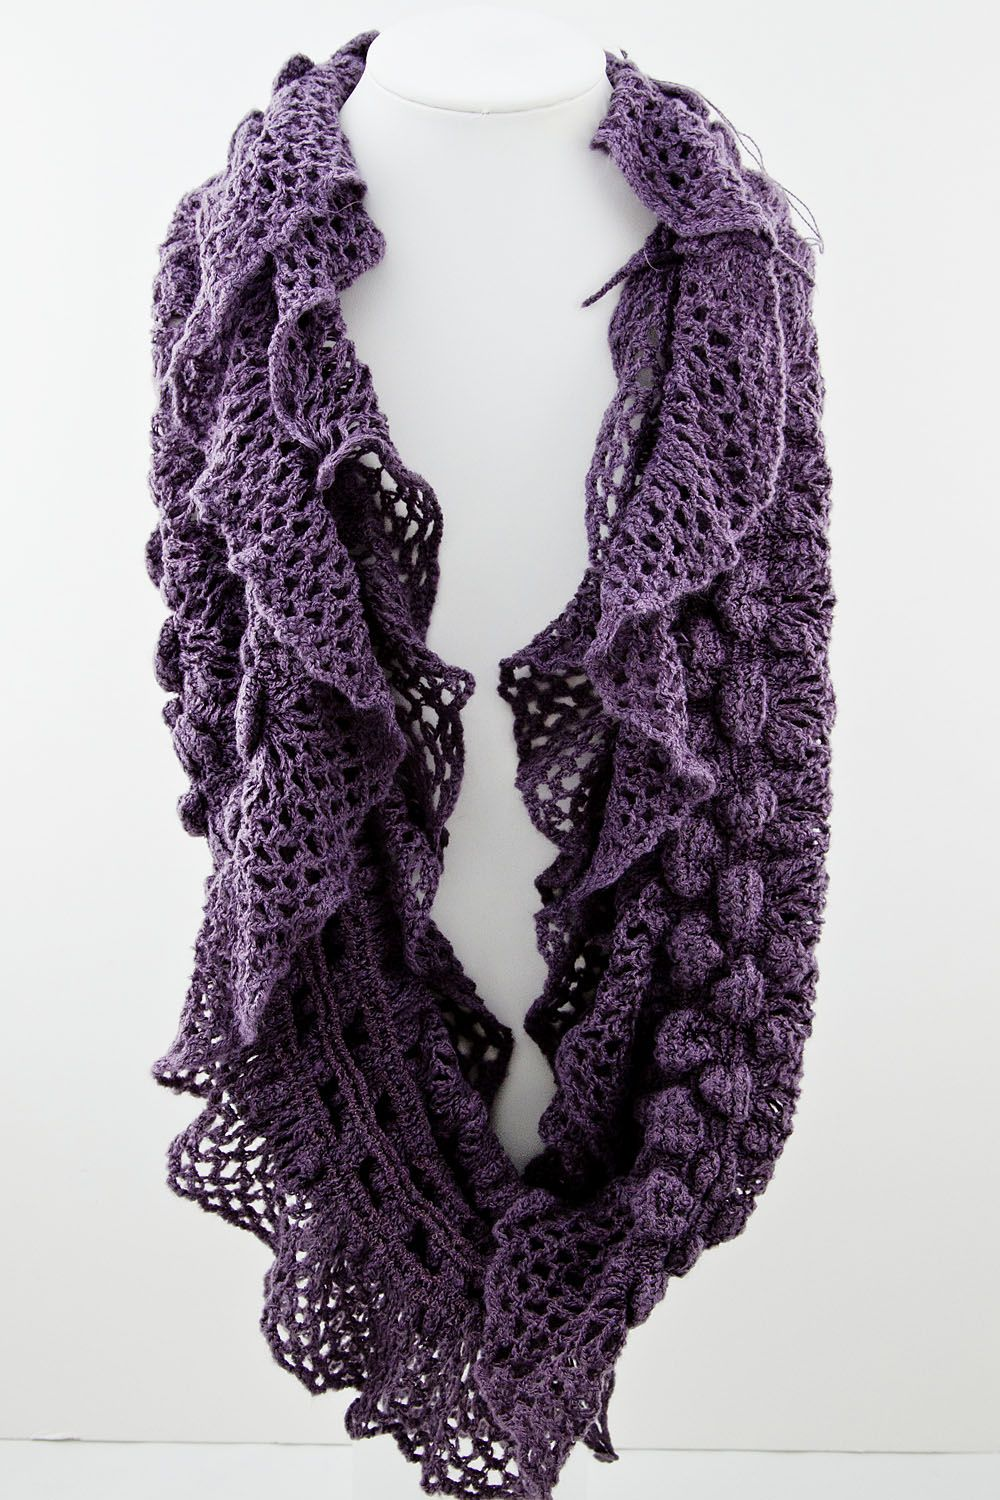 Knit Infinity Scarf | gemstone metal pearl stretch home scarves ruffle infinity knit scarf